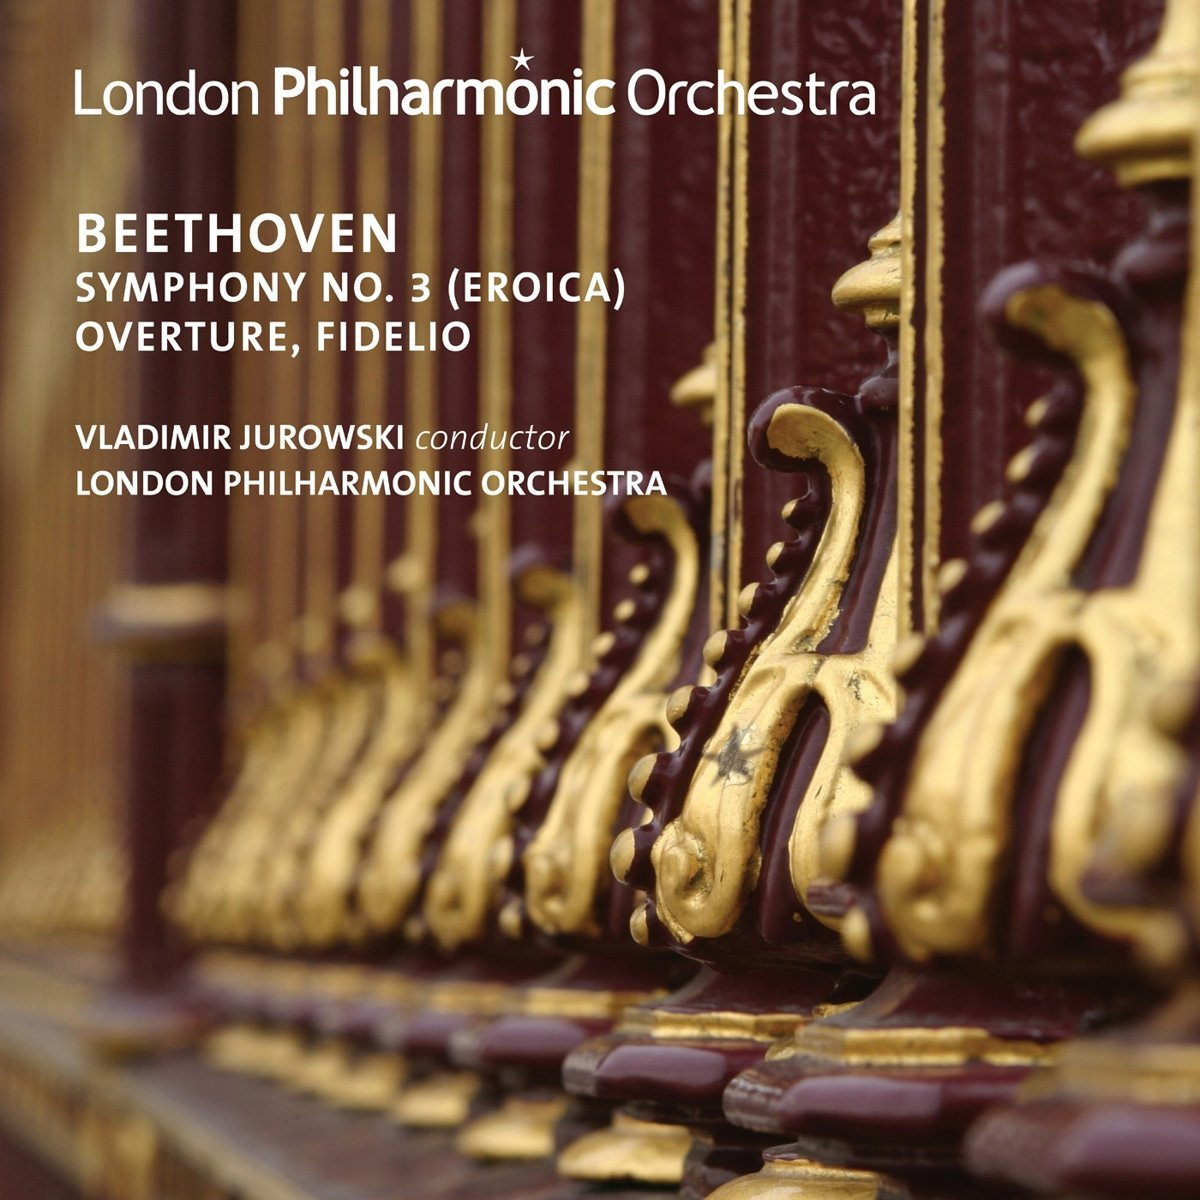 Royal Philharmonic Orchestra Beethoven